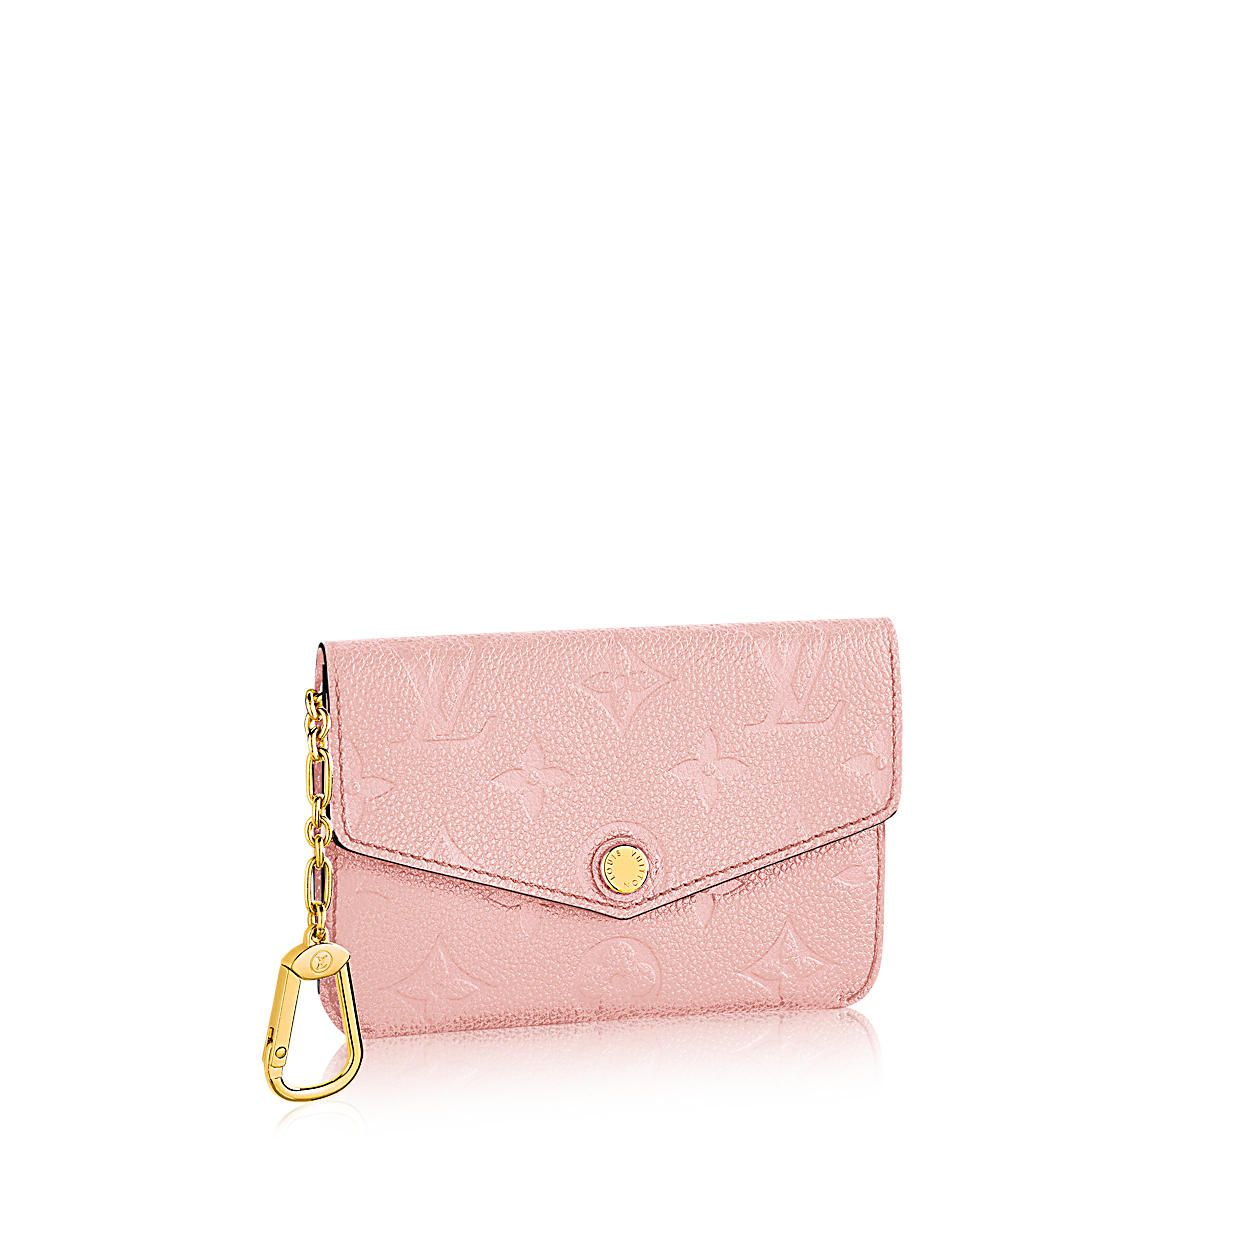 4537dac146c9 Key Pouch Monogram Empreinte Leather in WOMEN s SMALL LEATHER GOODS KEY    CARD HOLDERS collections by Louis Vuitton